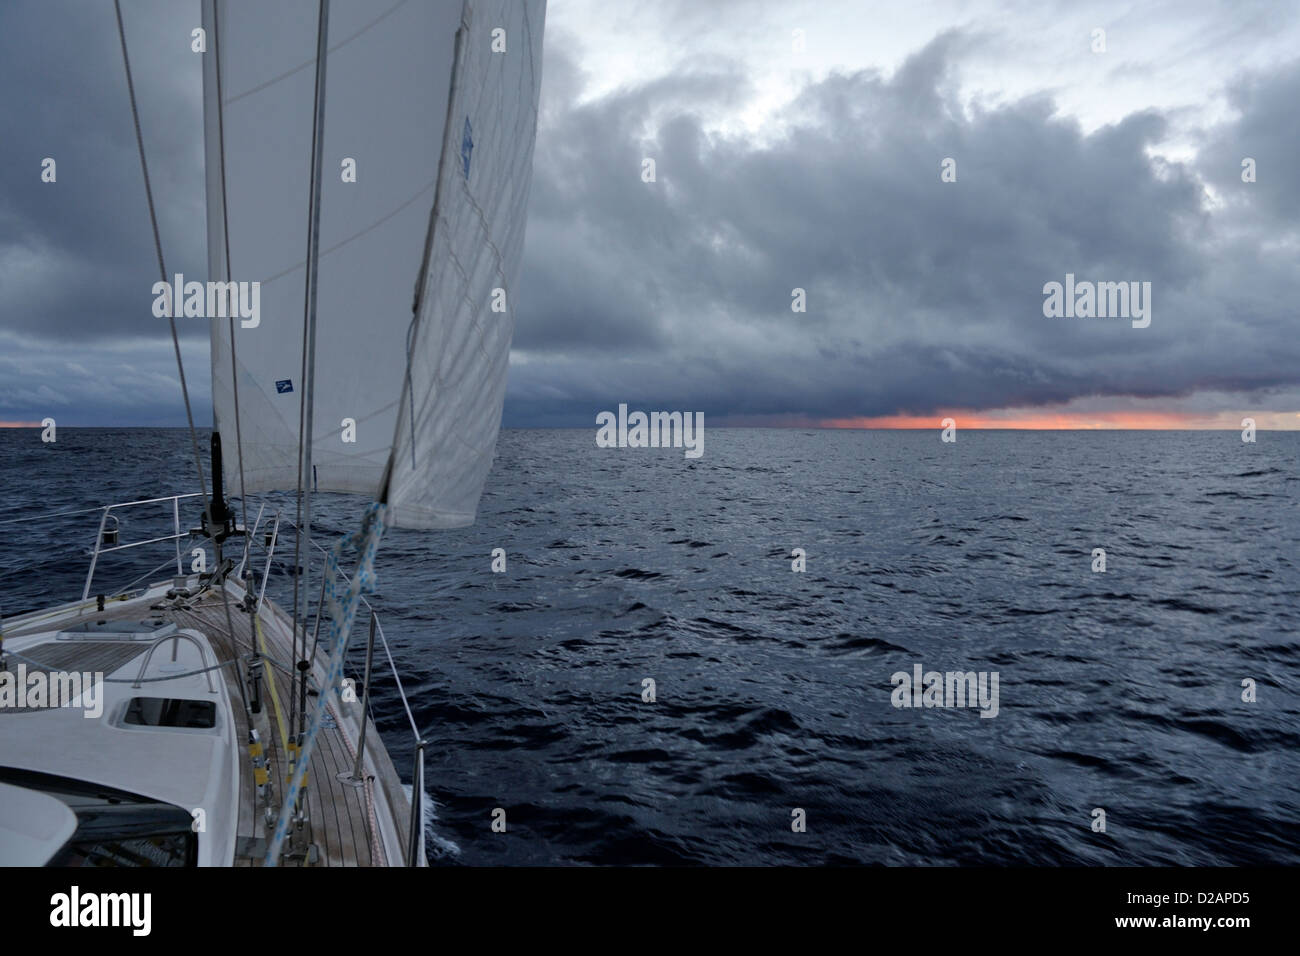 Squall ahead of a yacht, an Oyster 46, sailing alone in the South Pacific Ocean at dusk - Stock Image